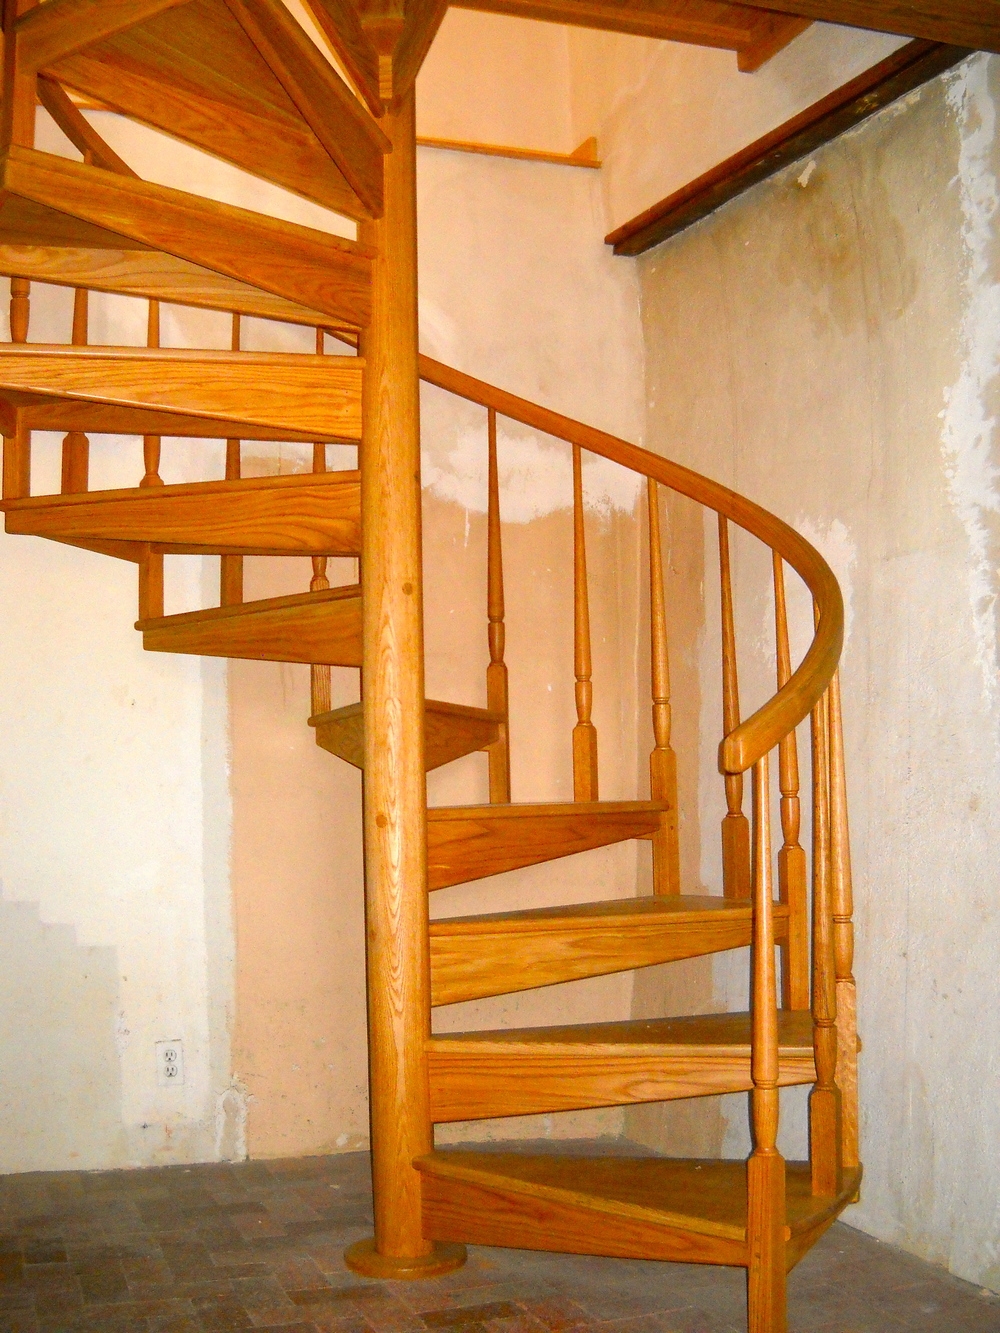 Custom oak spiral stairs.